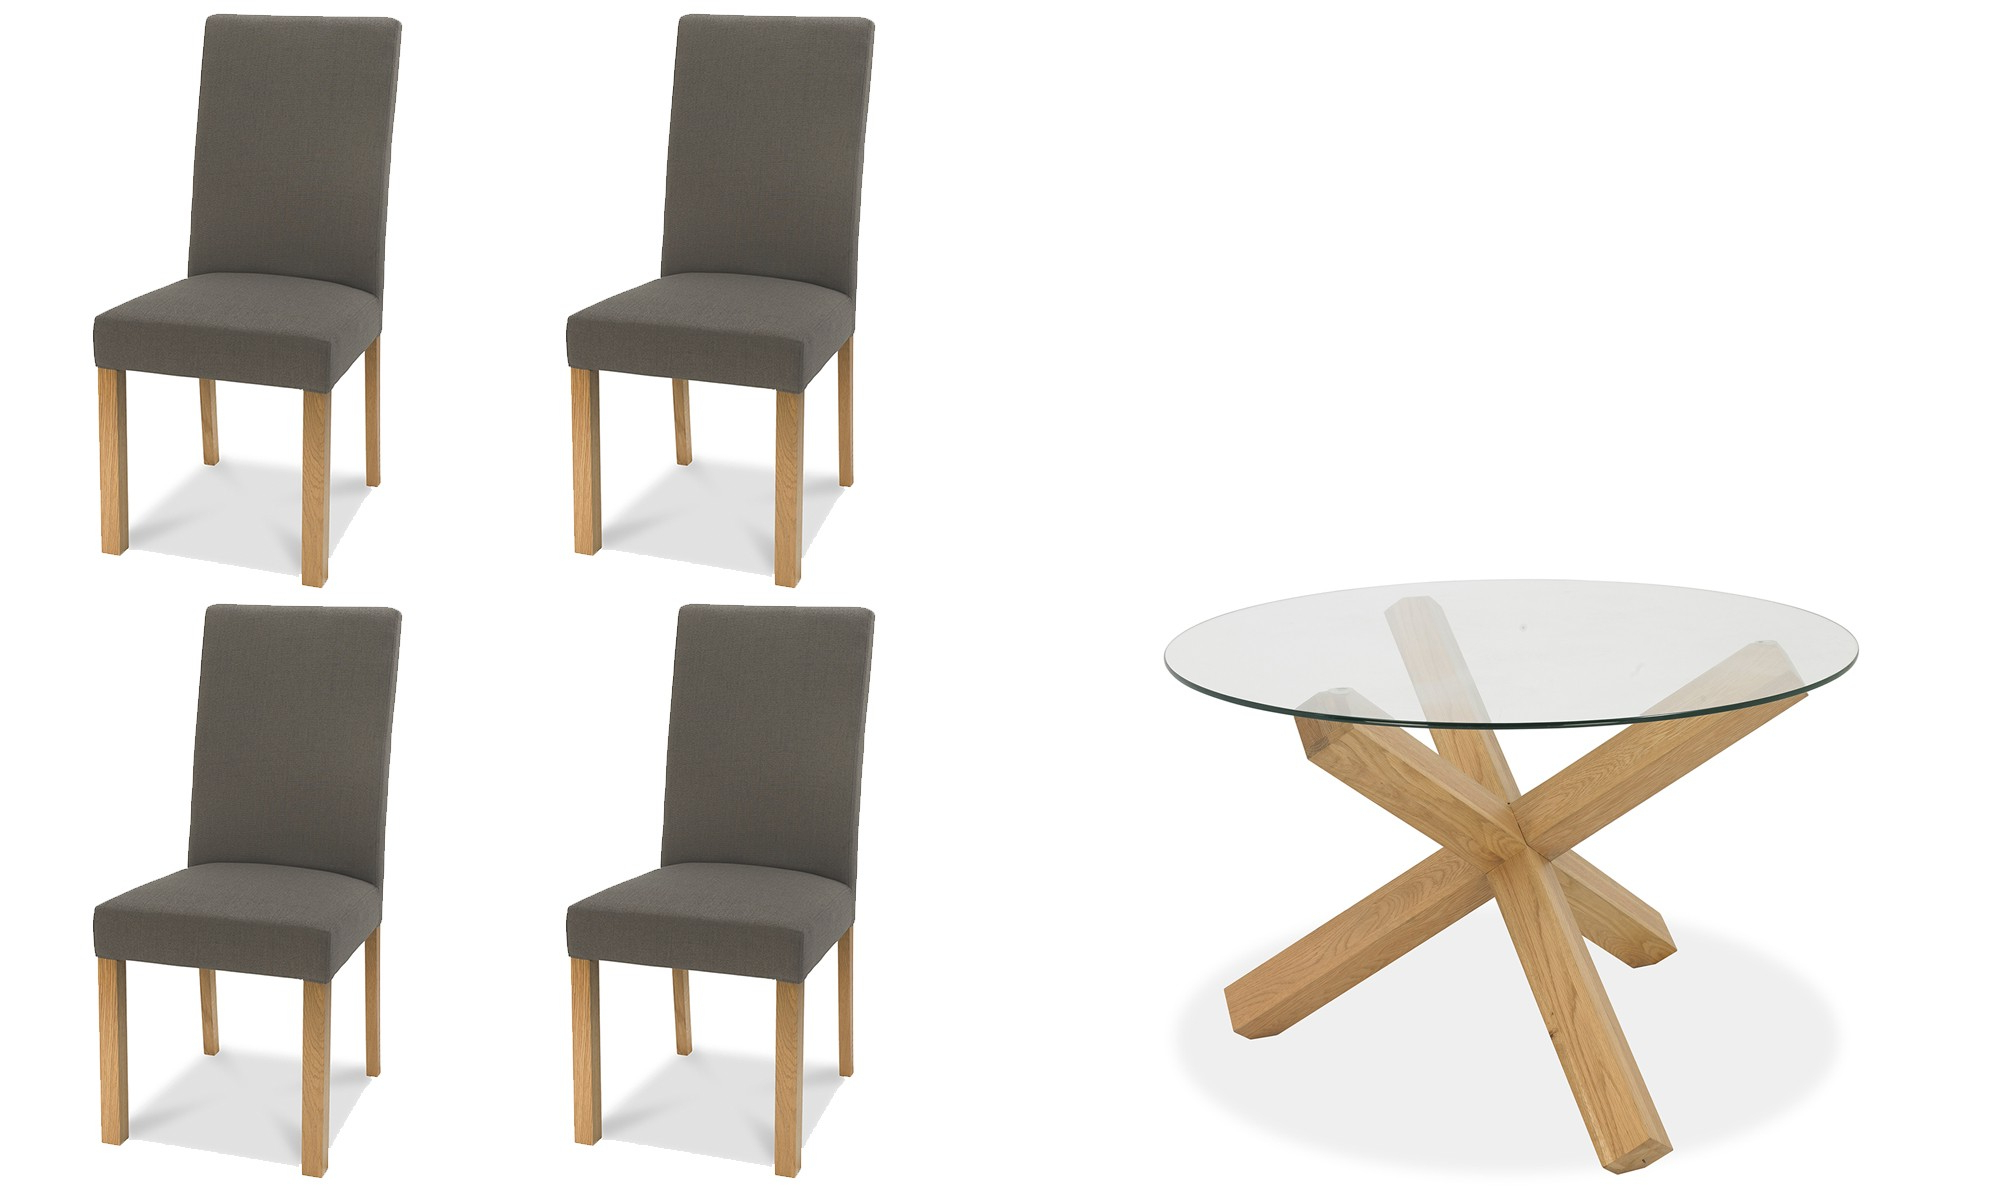 Round Glass Top Dining Tables For Well Liked Zephyr – 120cm Round Glass Top Dining Table & 4 Square Back Dining Chairs In Titanium Fabric (View 30 of 30)